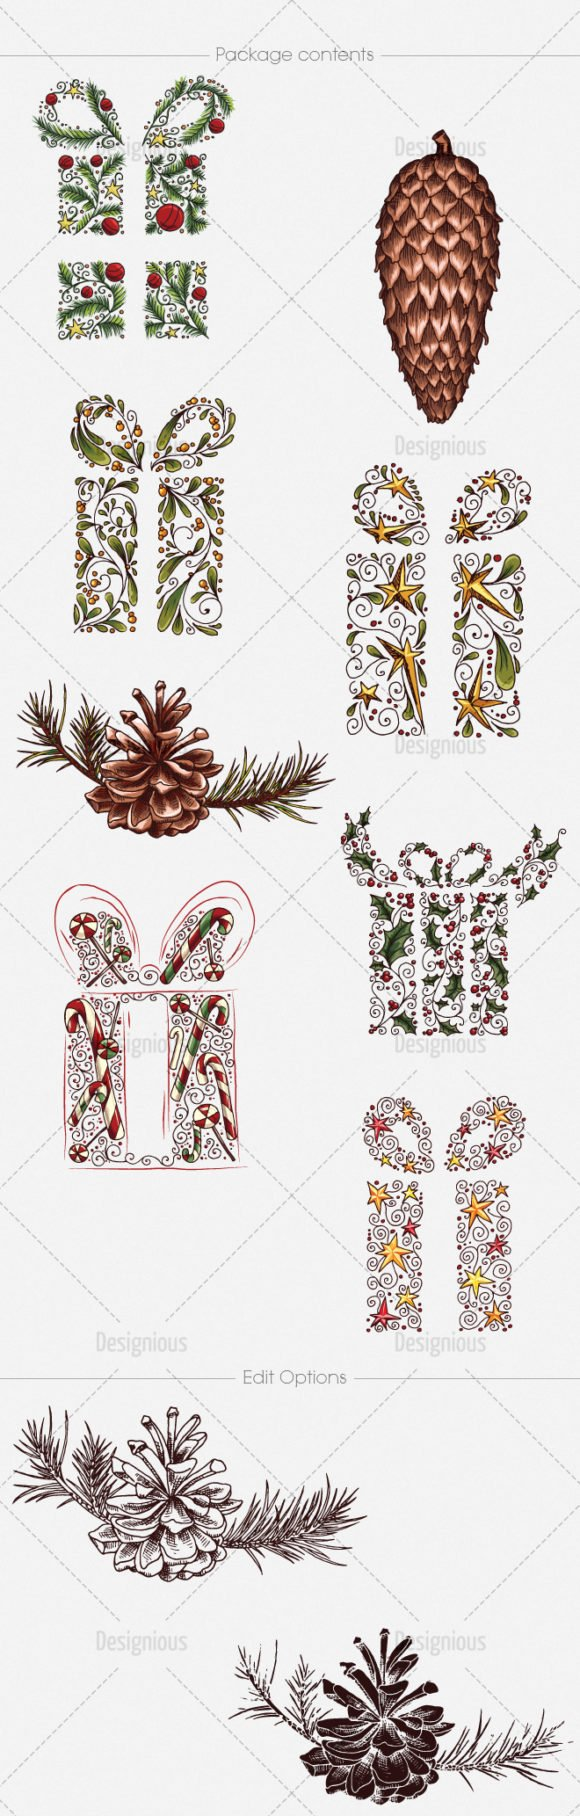 Christmas Vector Pack 20 2